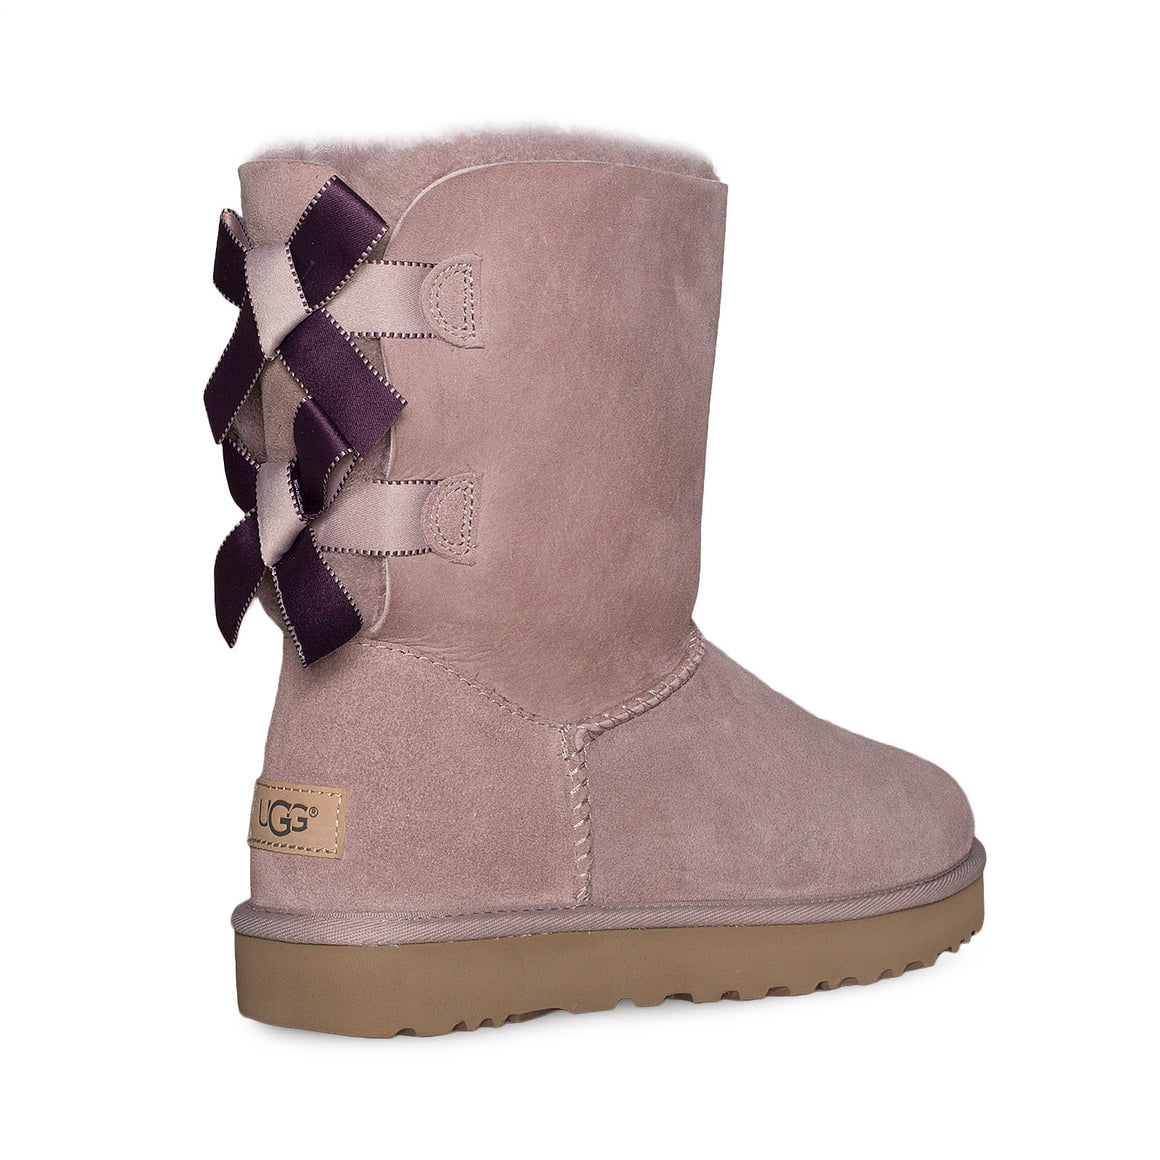 UGG Bailey Bow II Shimmer Dusk Boots - Women's